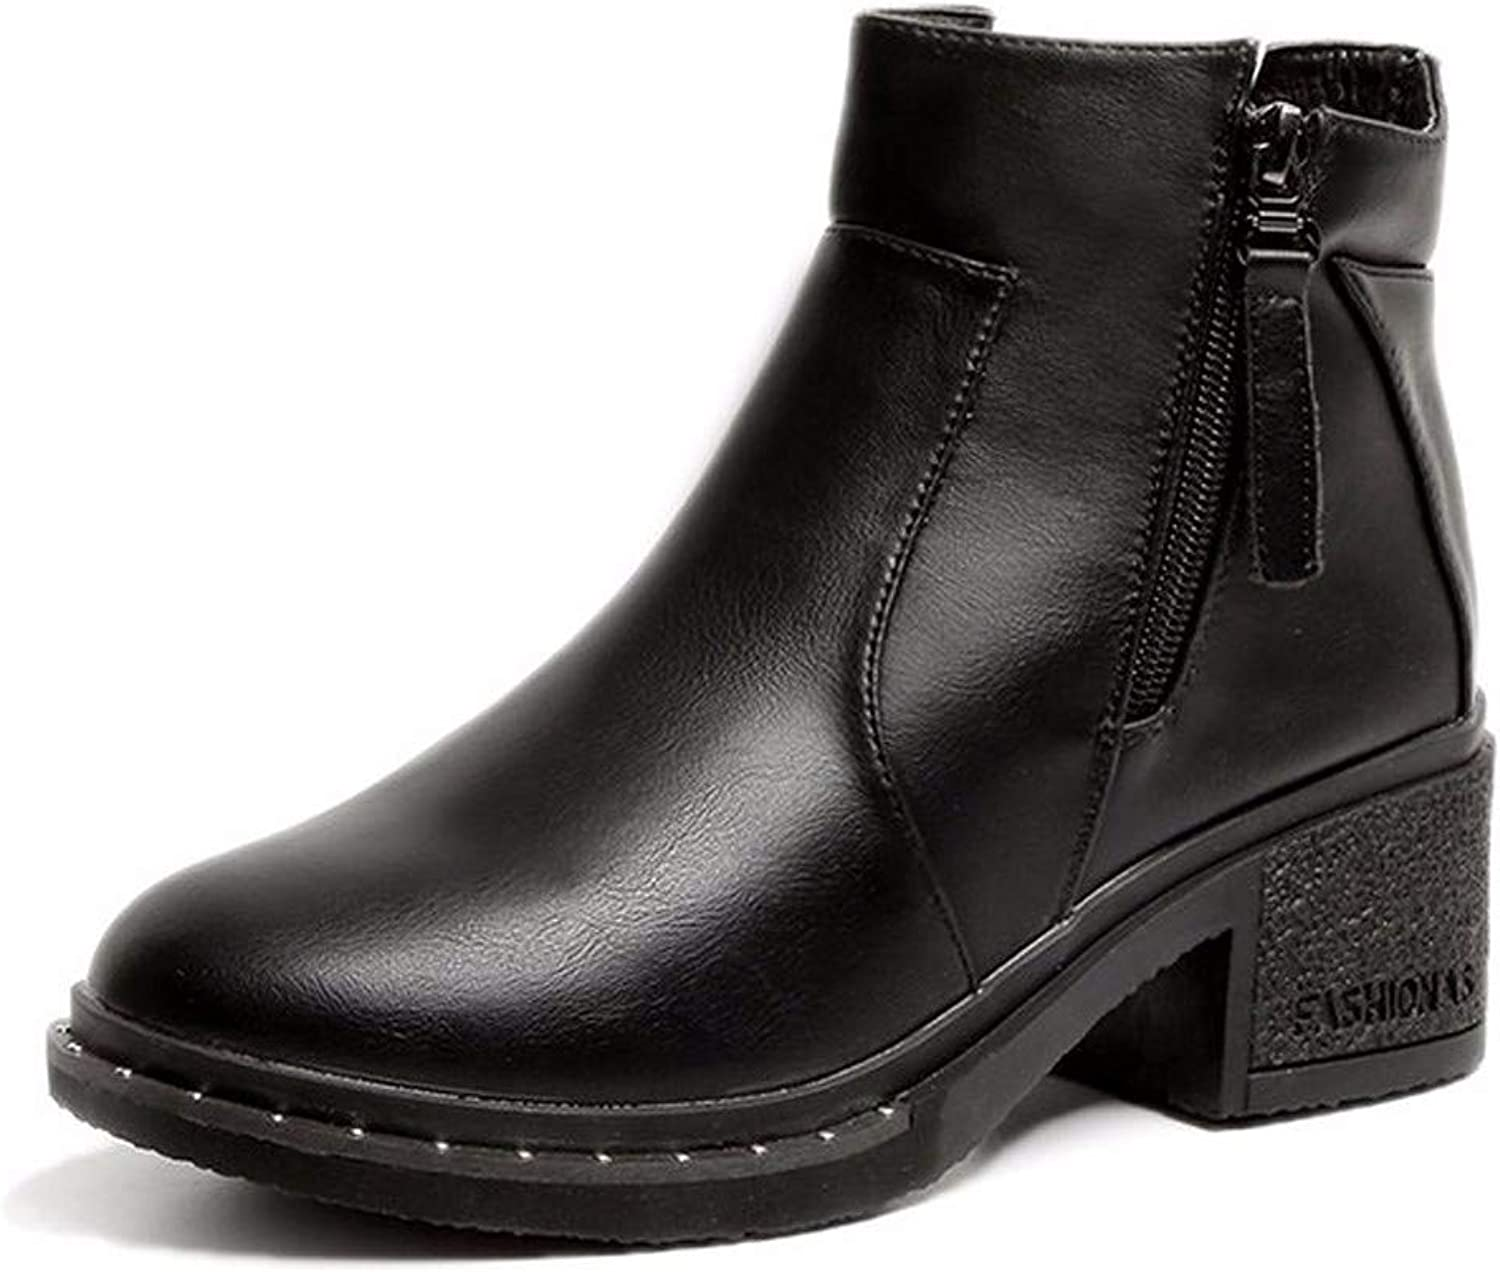 SFSYDDY Popular shoes Martin Boots with High 6Cm Students Wild Cashmere Coarse Winter Short Boots.